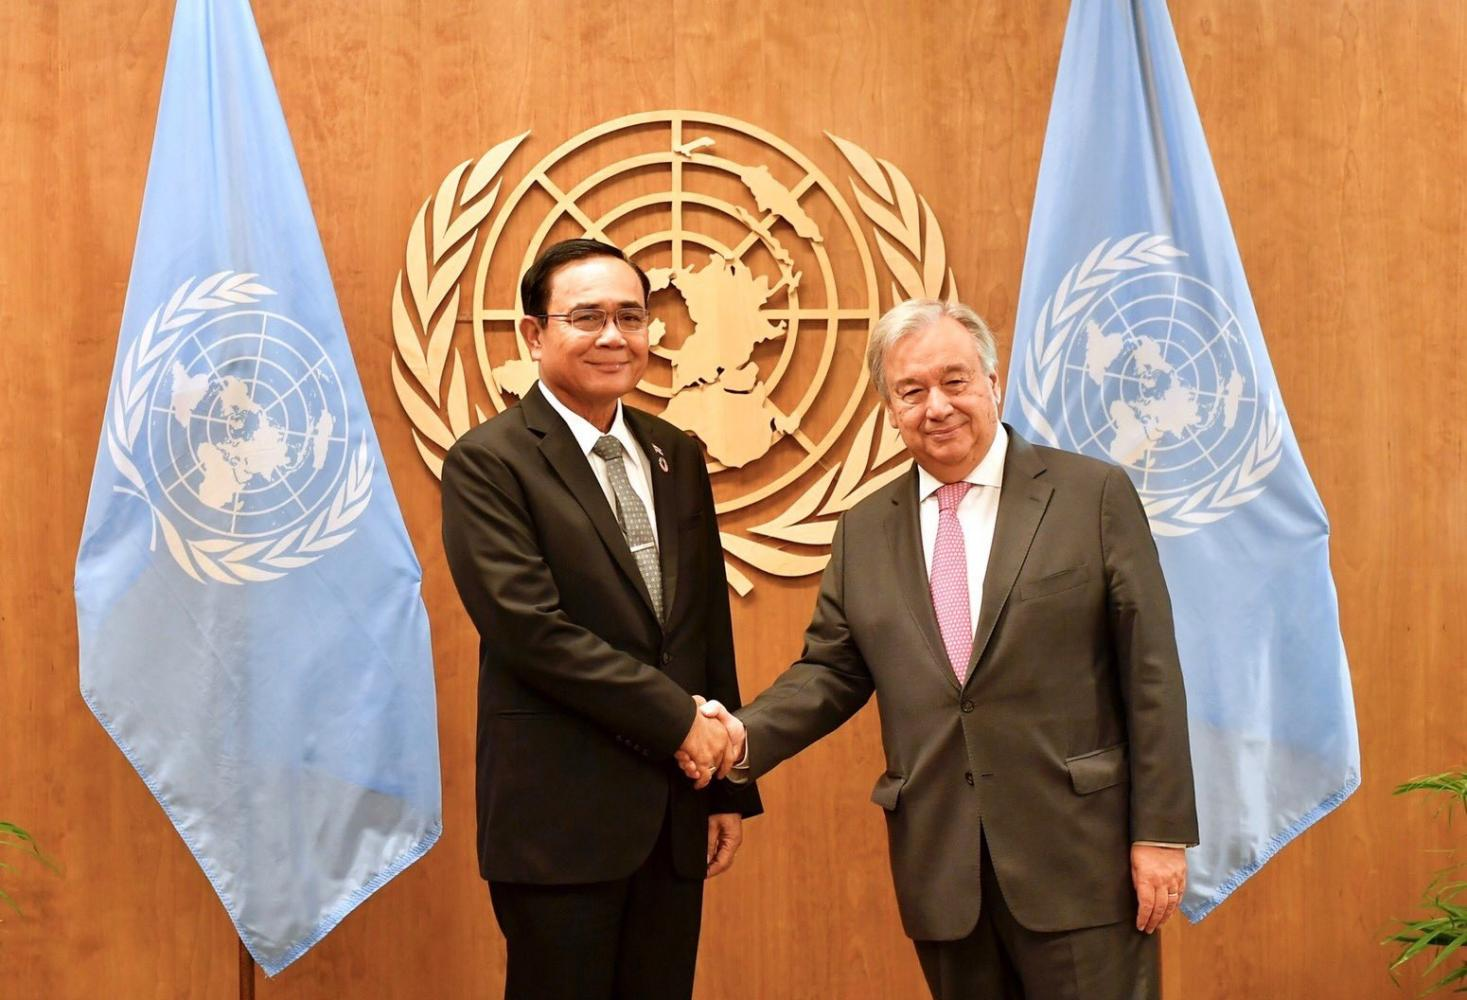 Prime Minister Prayut Chan-o-cha, left, shakes hands with UN Secretary-General Antonio Guterres during their meeting at the UN headquarters yesterday.(Government House photo)